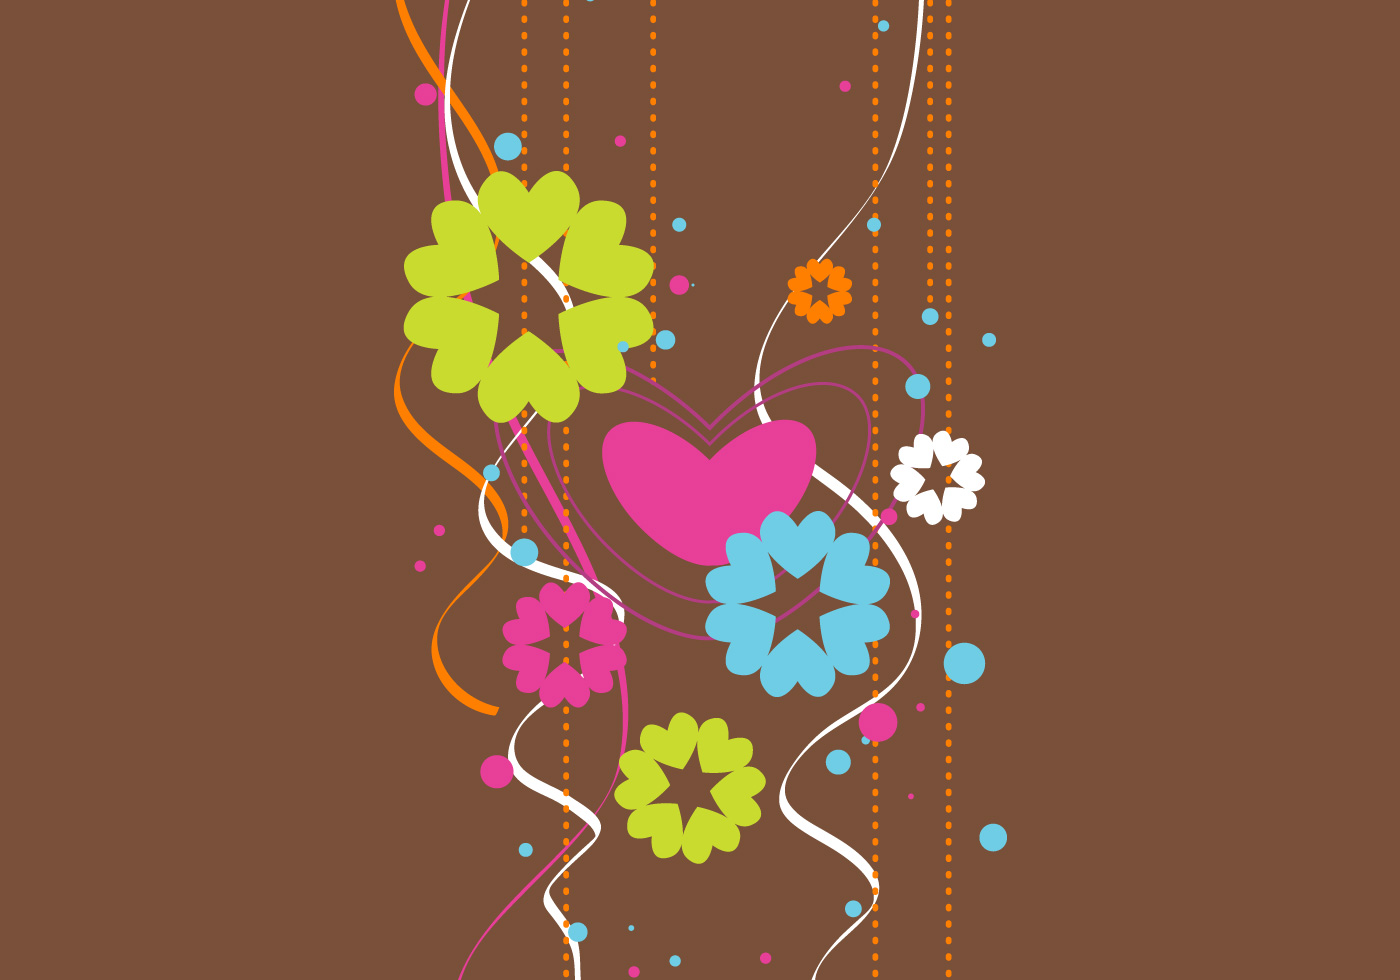 Funky Floral Heart Vector - Download Free Vector Art ...